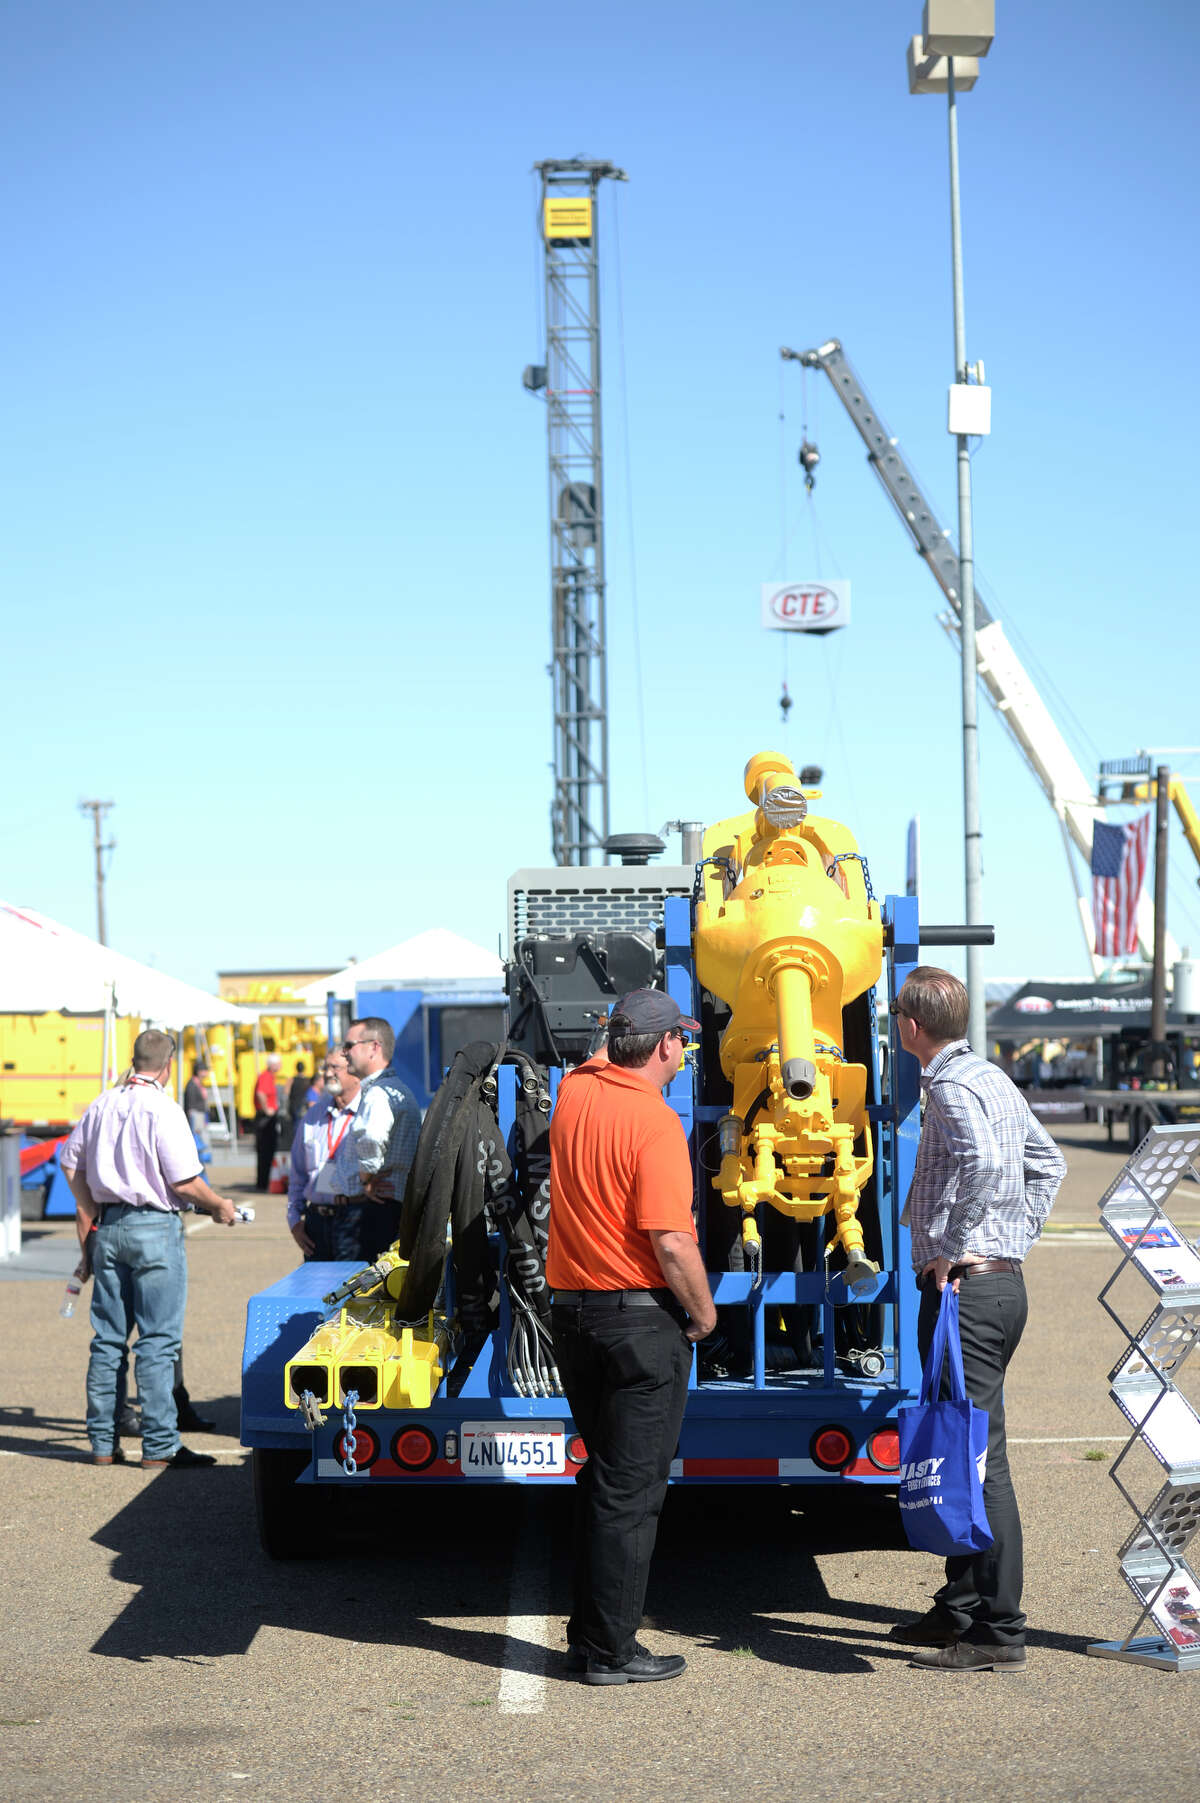 2016 Permian Basin International Oil Show at the Ector County Coliseum in Odessa.